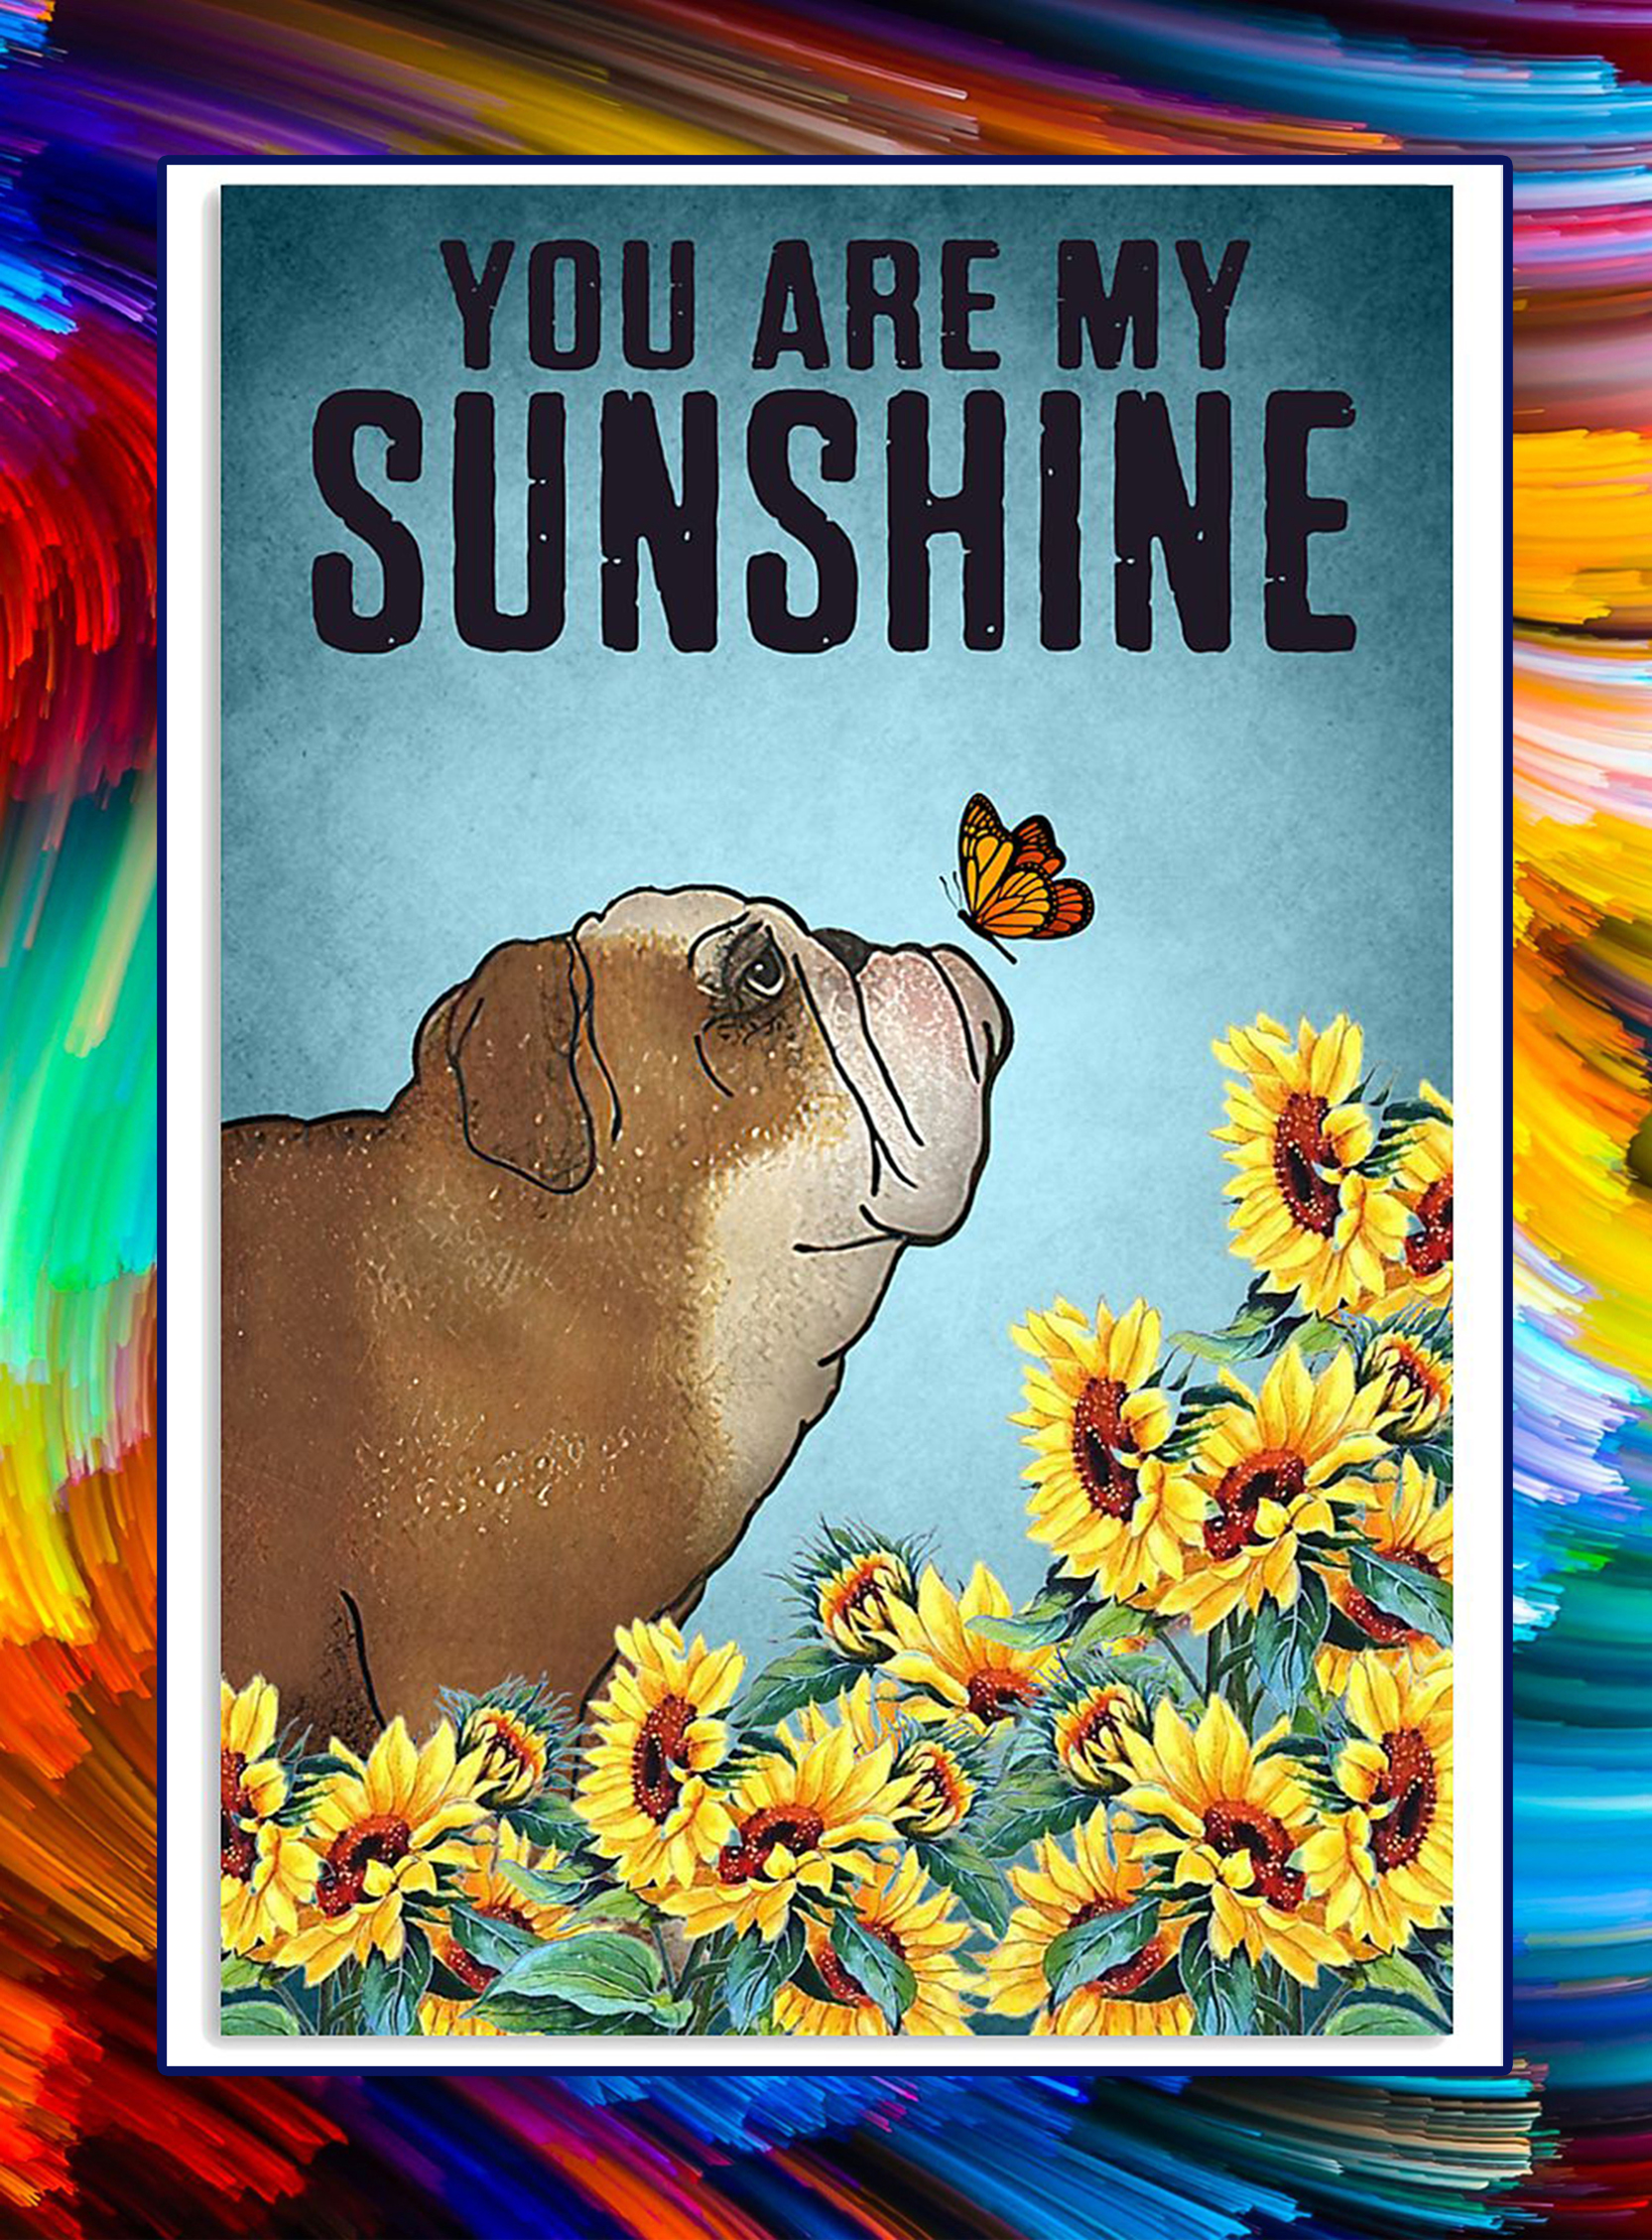 Bulldog puppies you are my sunshine poster - A1